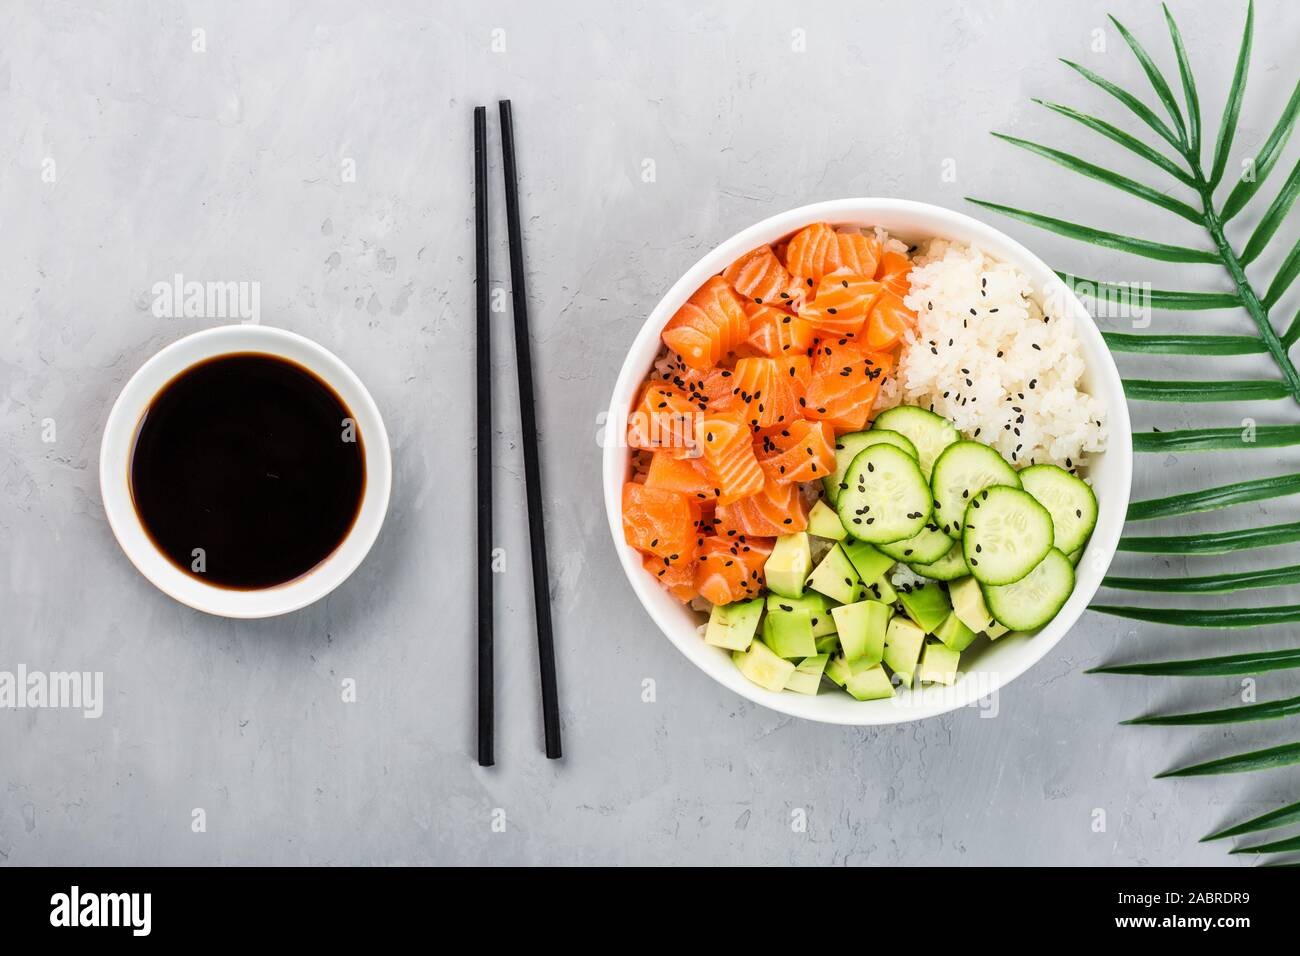 Hawaiian salmon bowl with cucumbers, avocado, sesame seeds and rice. Top view, overhead, flat lay, mock up, template. Healthy food concept Stock Photo